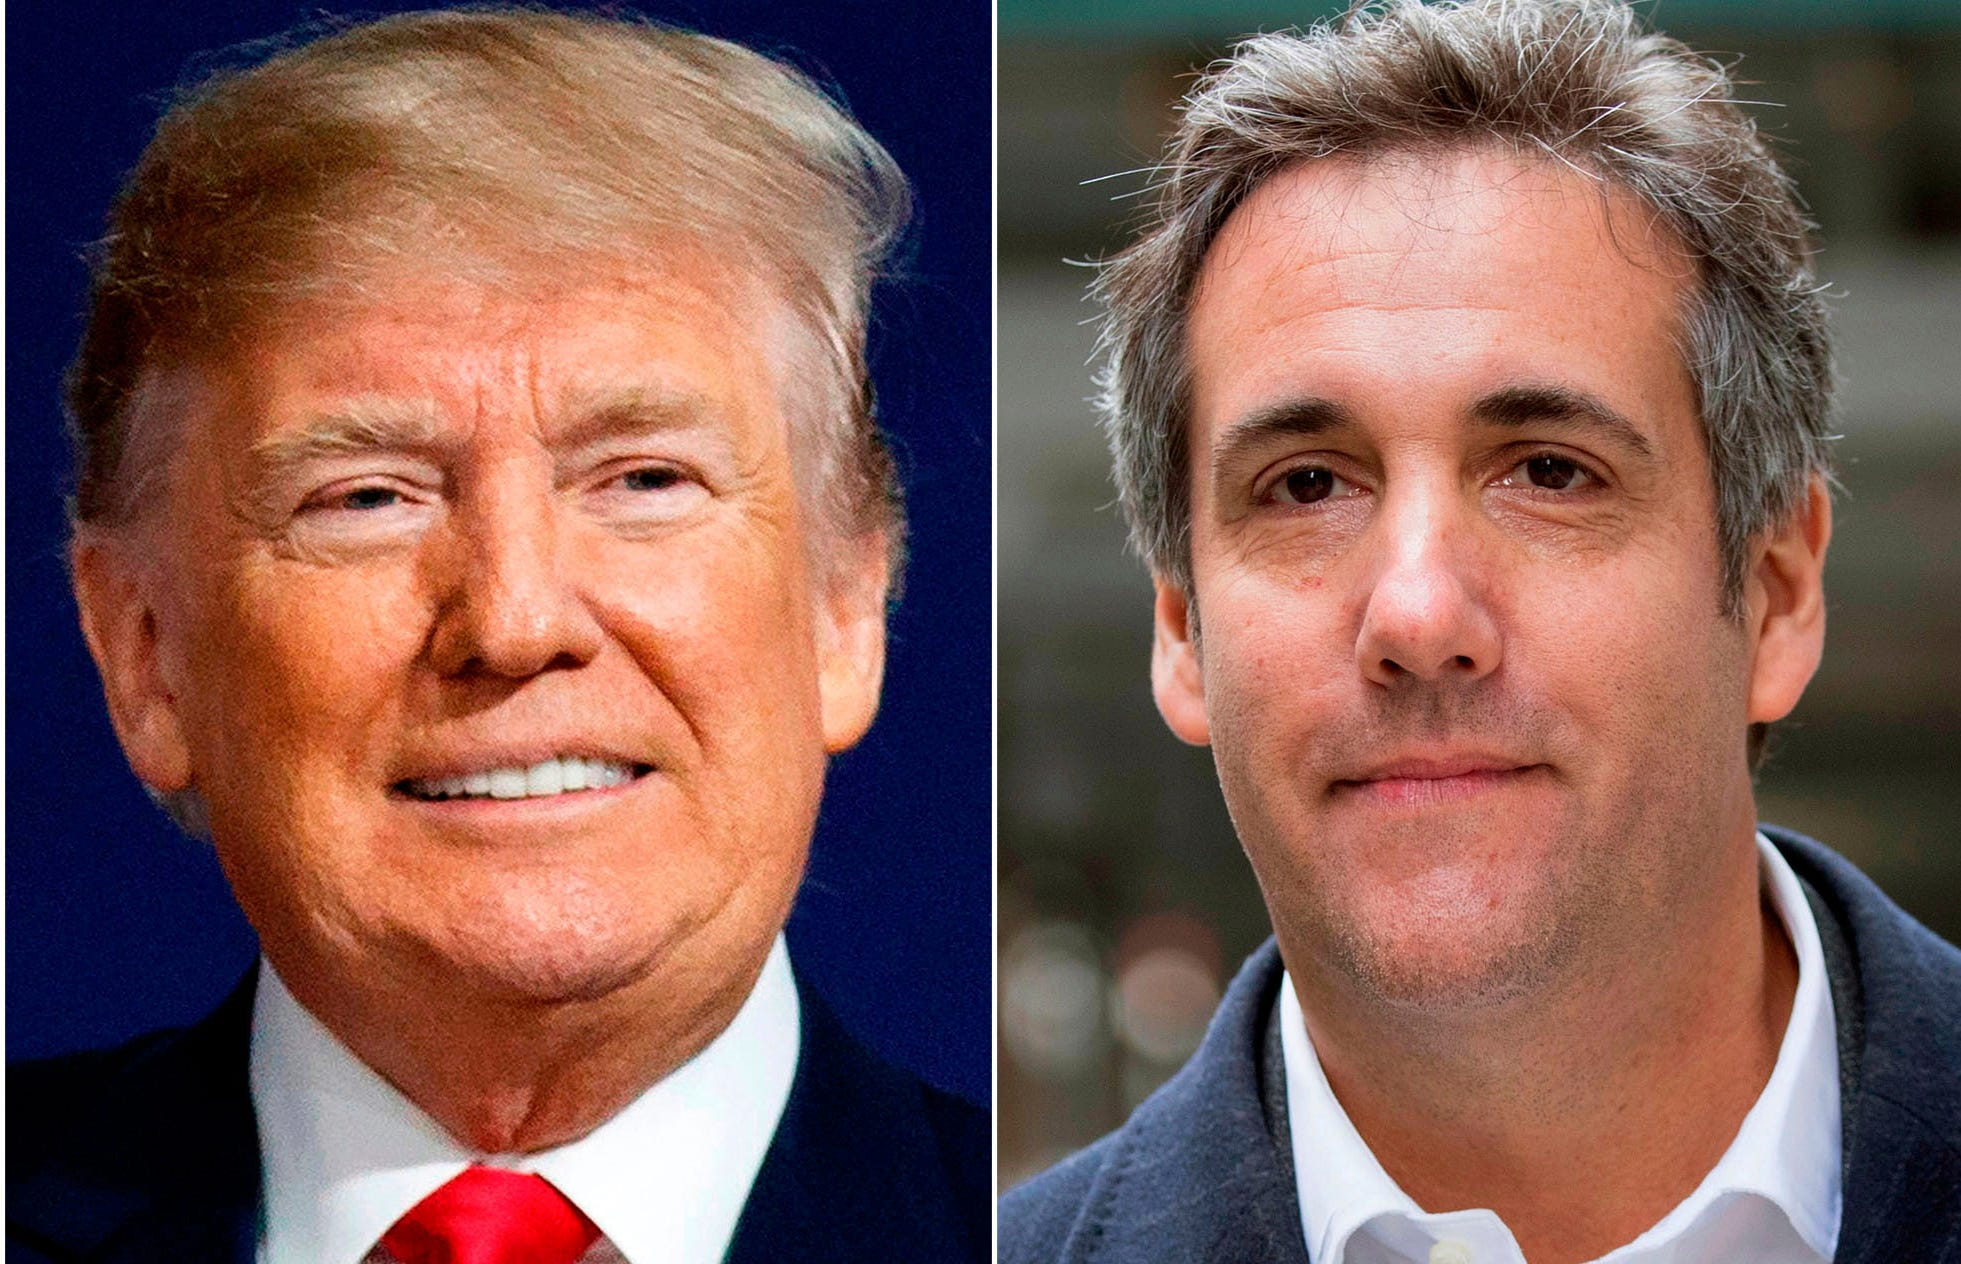 President Donald Trump's former personal attorney and fixer Michael Cohen pleaded guilty on Nov. 29, 2018, to one count of lying to Congress about his work on a project to build a Trump Tower in Moscow.